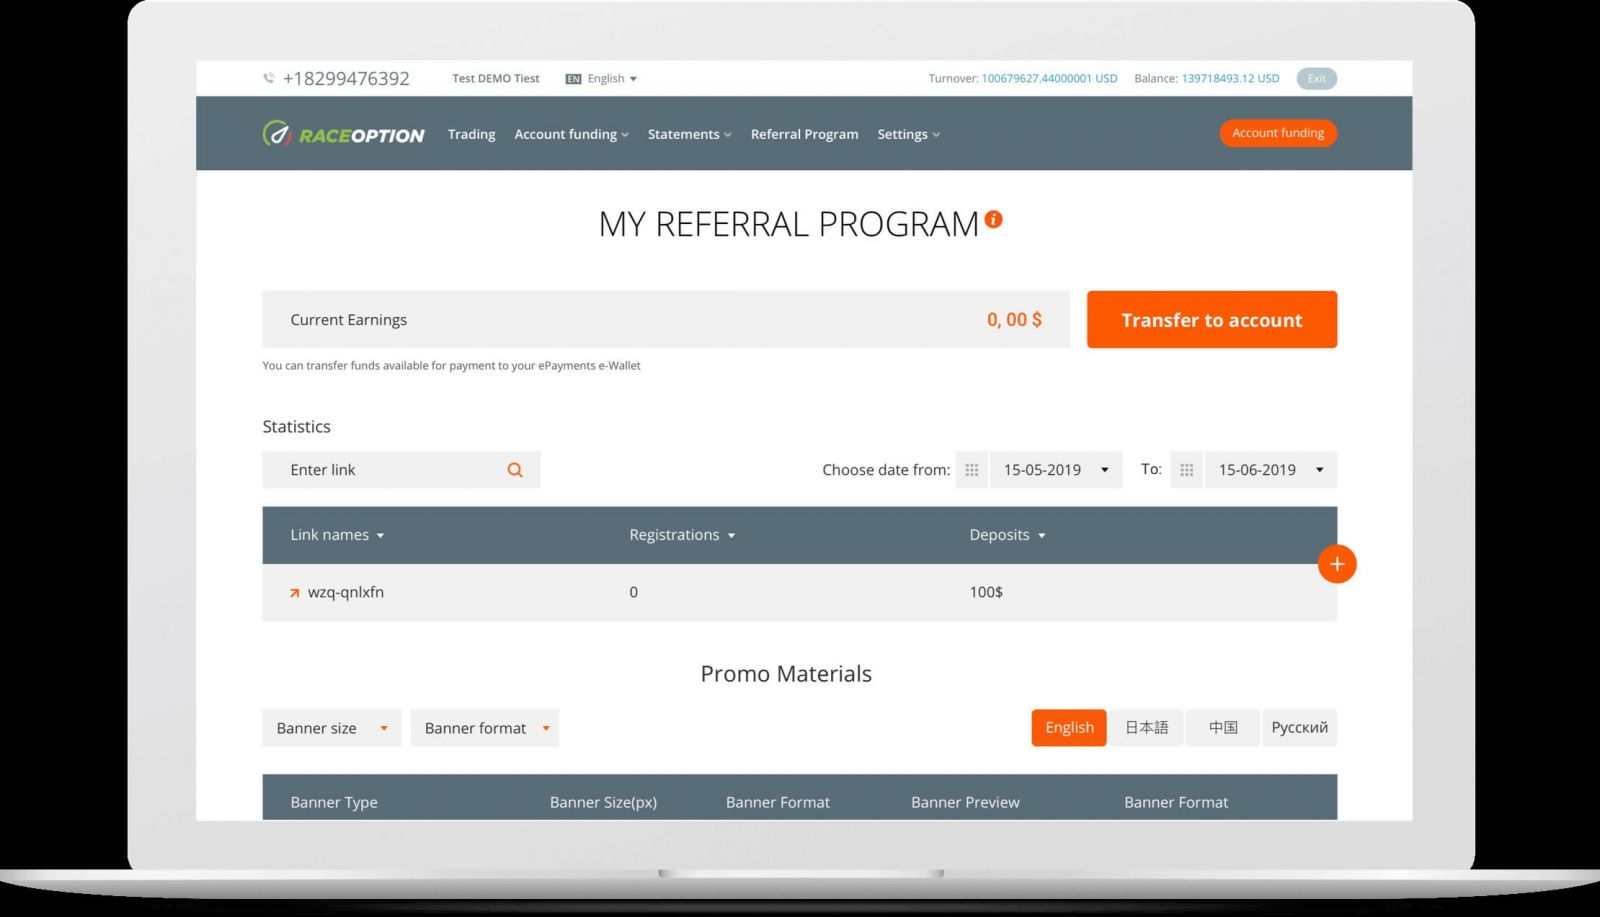 What is the Benefit of Raceoption Referral Program? Why Trader choose Raceoption